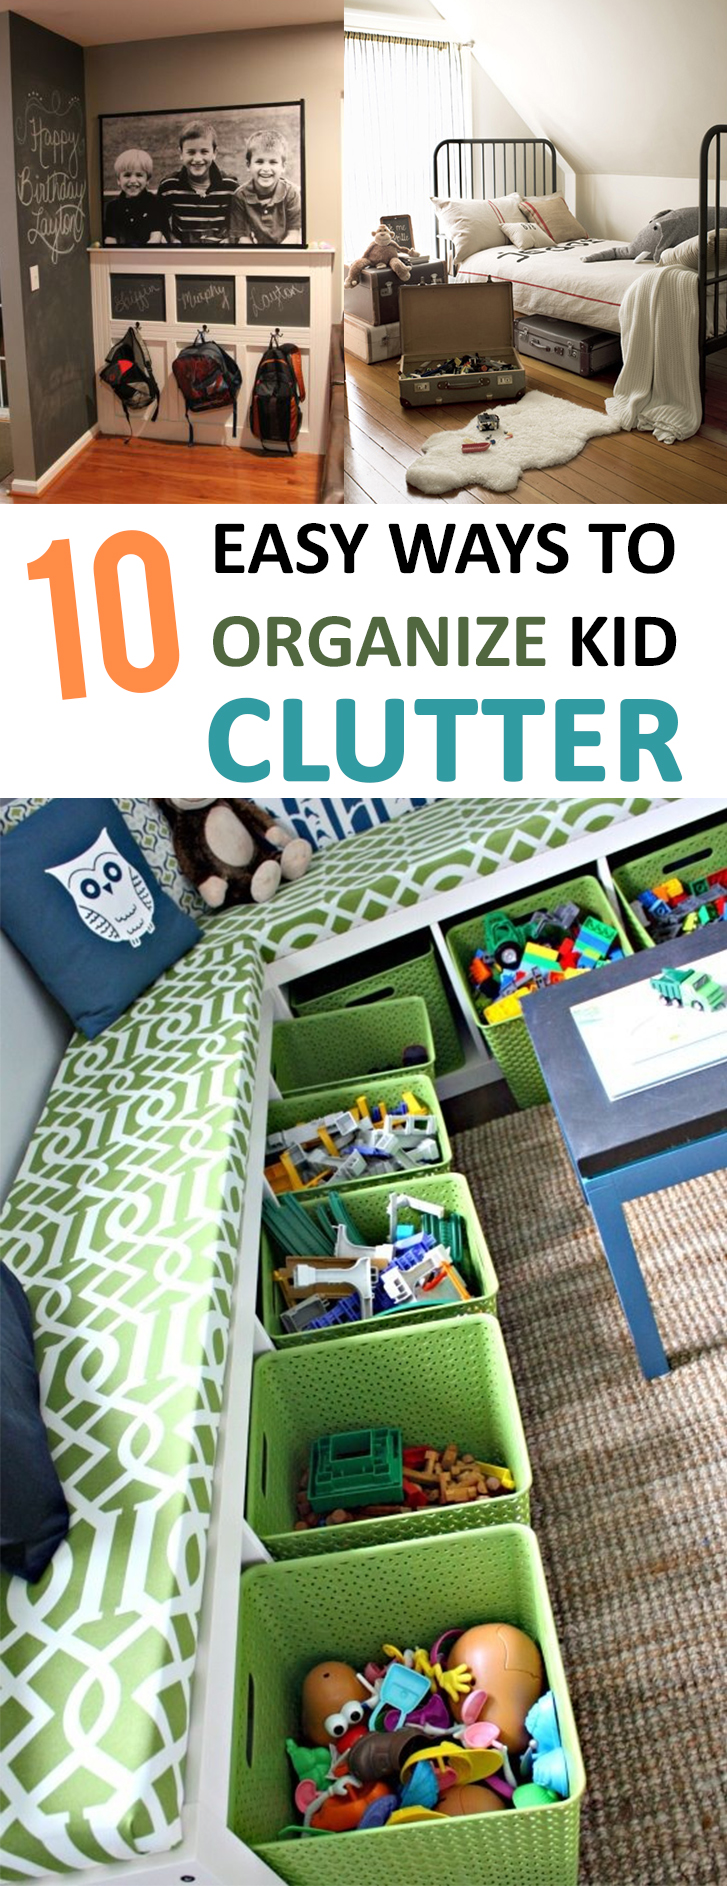 10 Easy Ways to Organize Kid Clutter